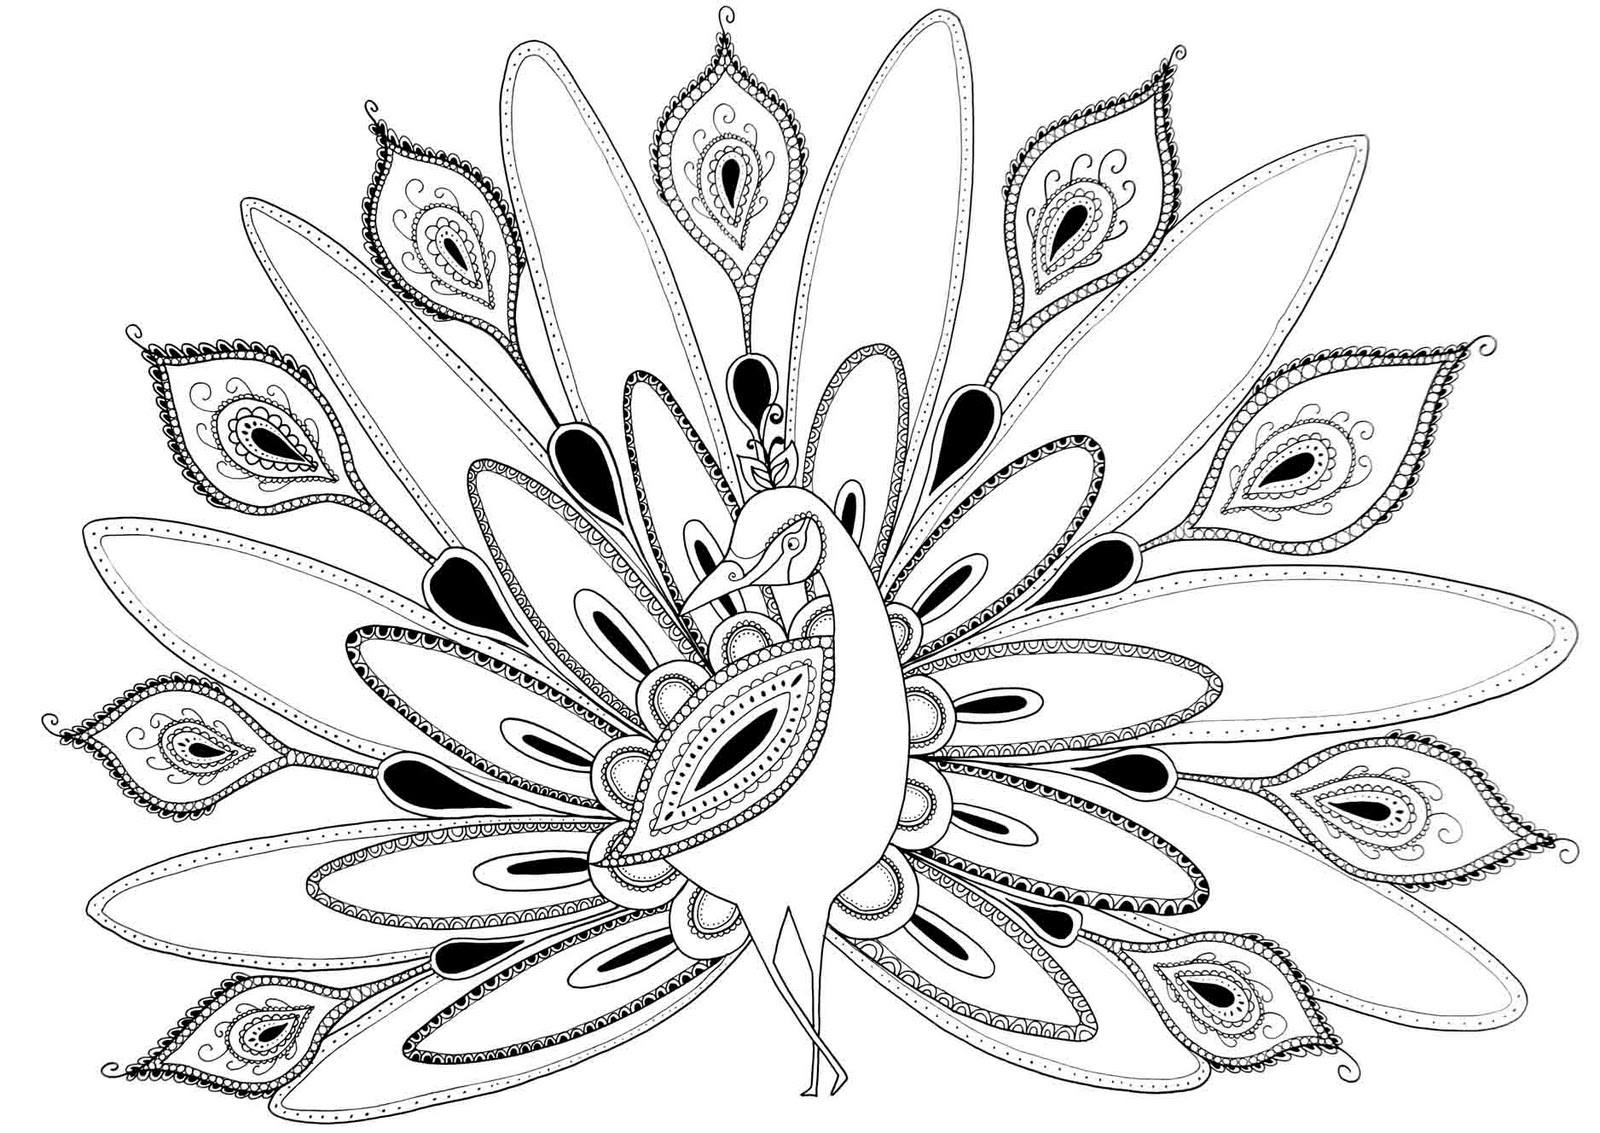 picture of peacock to color bird peacock coloring pages free printable coloring pages peacock to picture of color